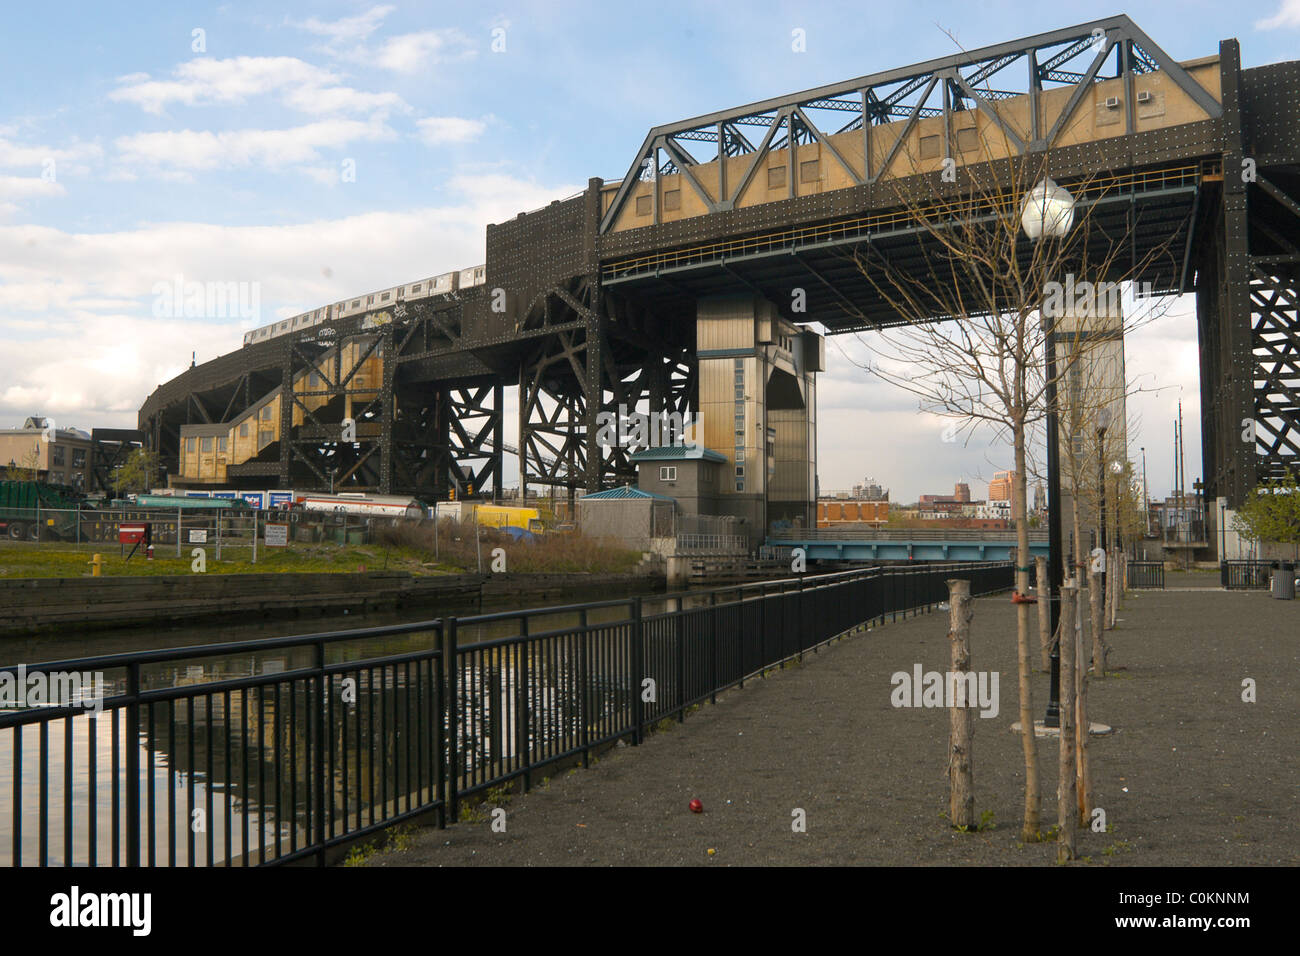 Brooklyn, NY -- The New York City Subway reaches its highest point at Smith and Ninth Street where it crosses the - Stock Image